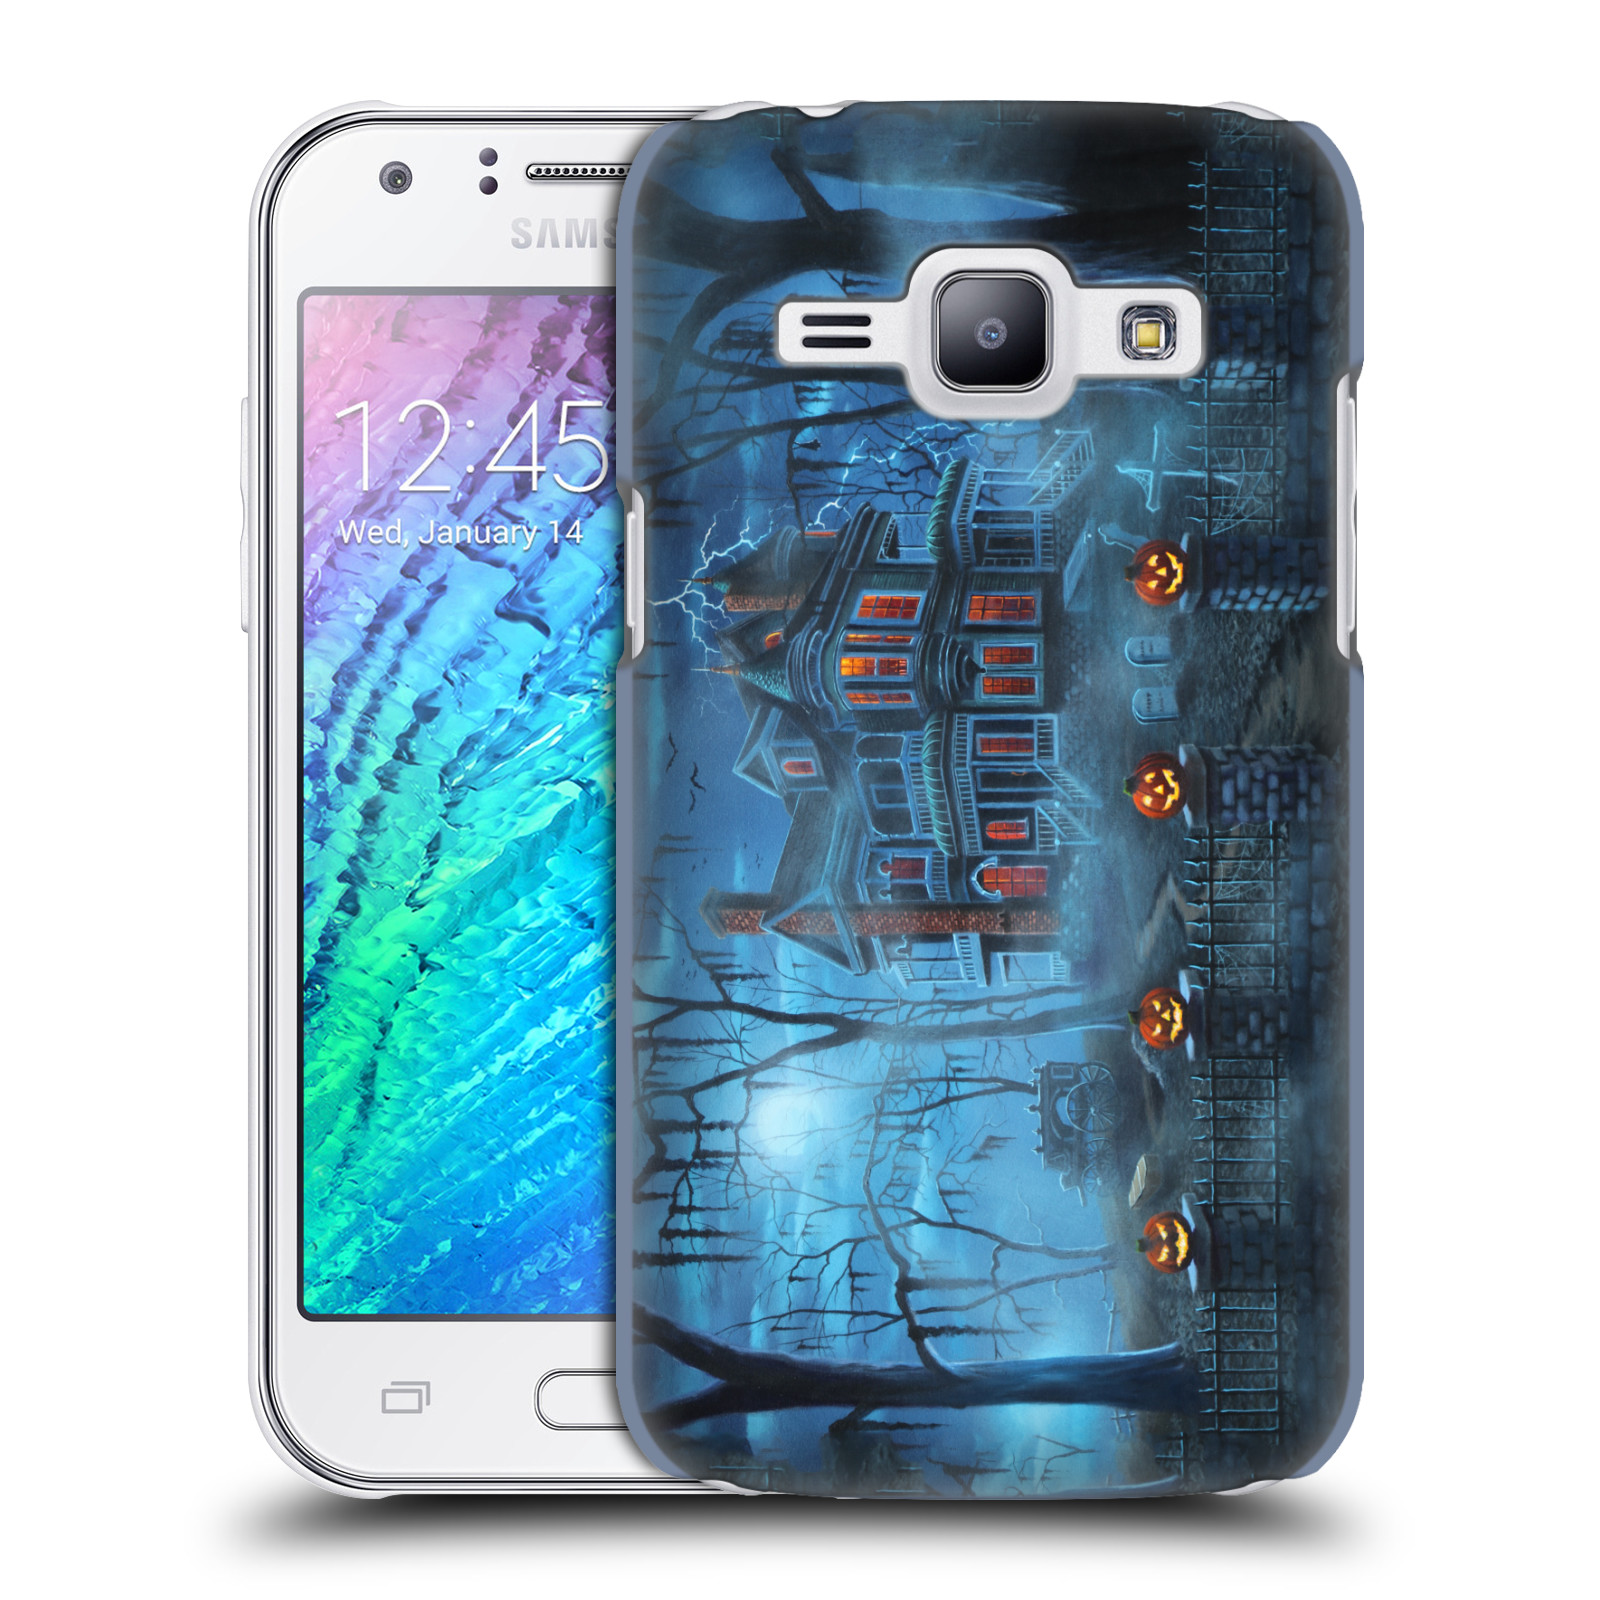 OFFICIEL-GENO-PEOPLES-ART-HALLOWEEN-ETUI-COQUE-POUR-SAMSUNG-TELEPHONES-4